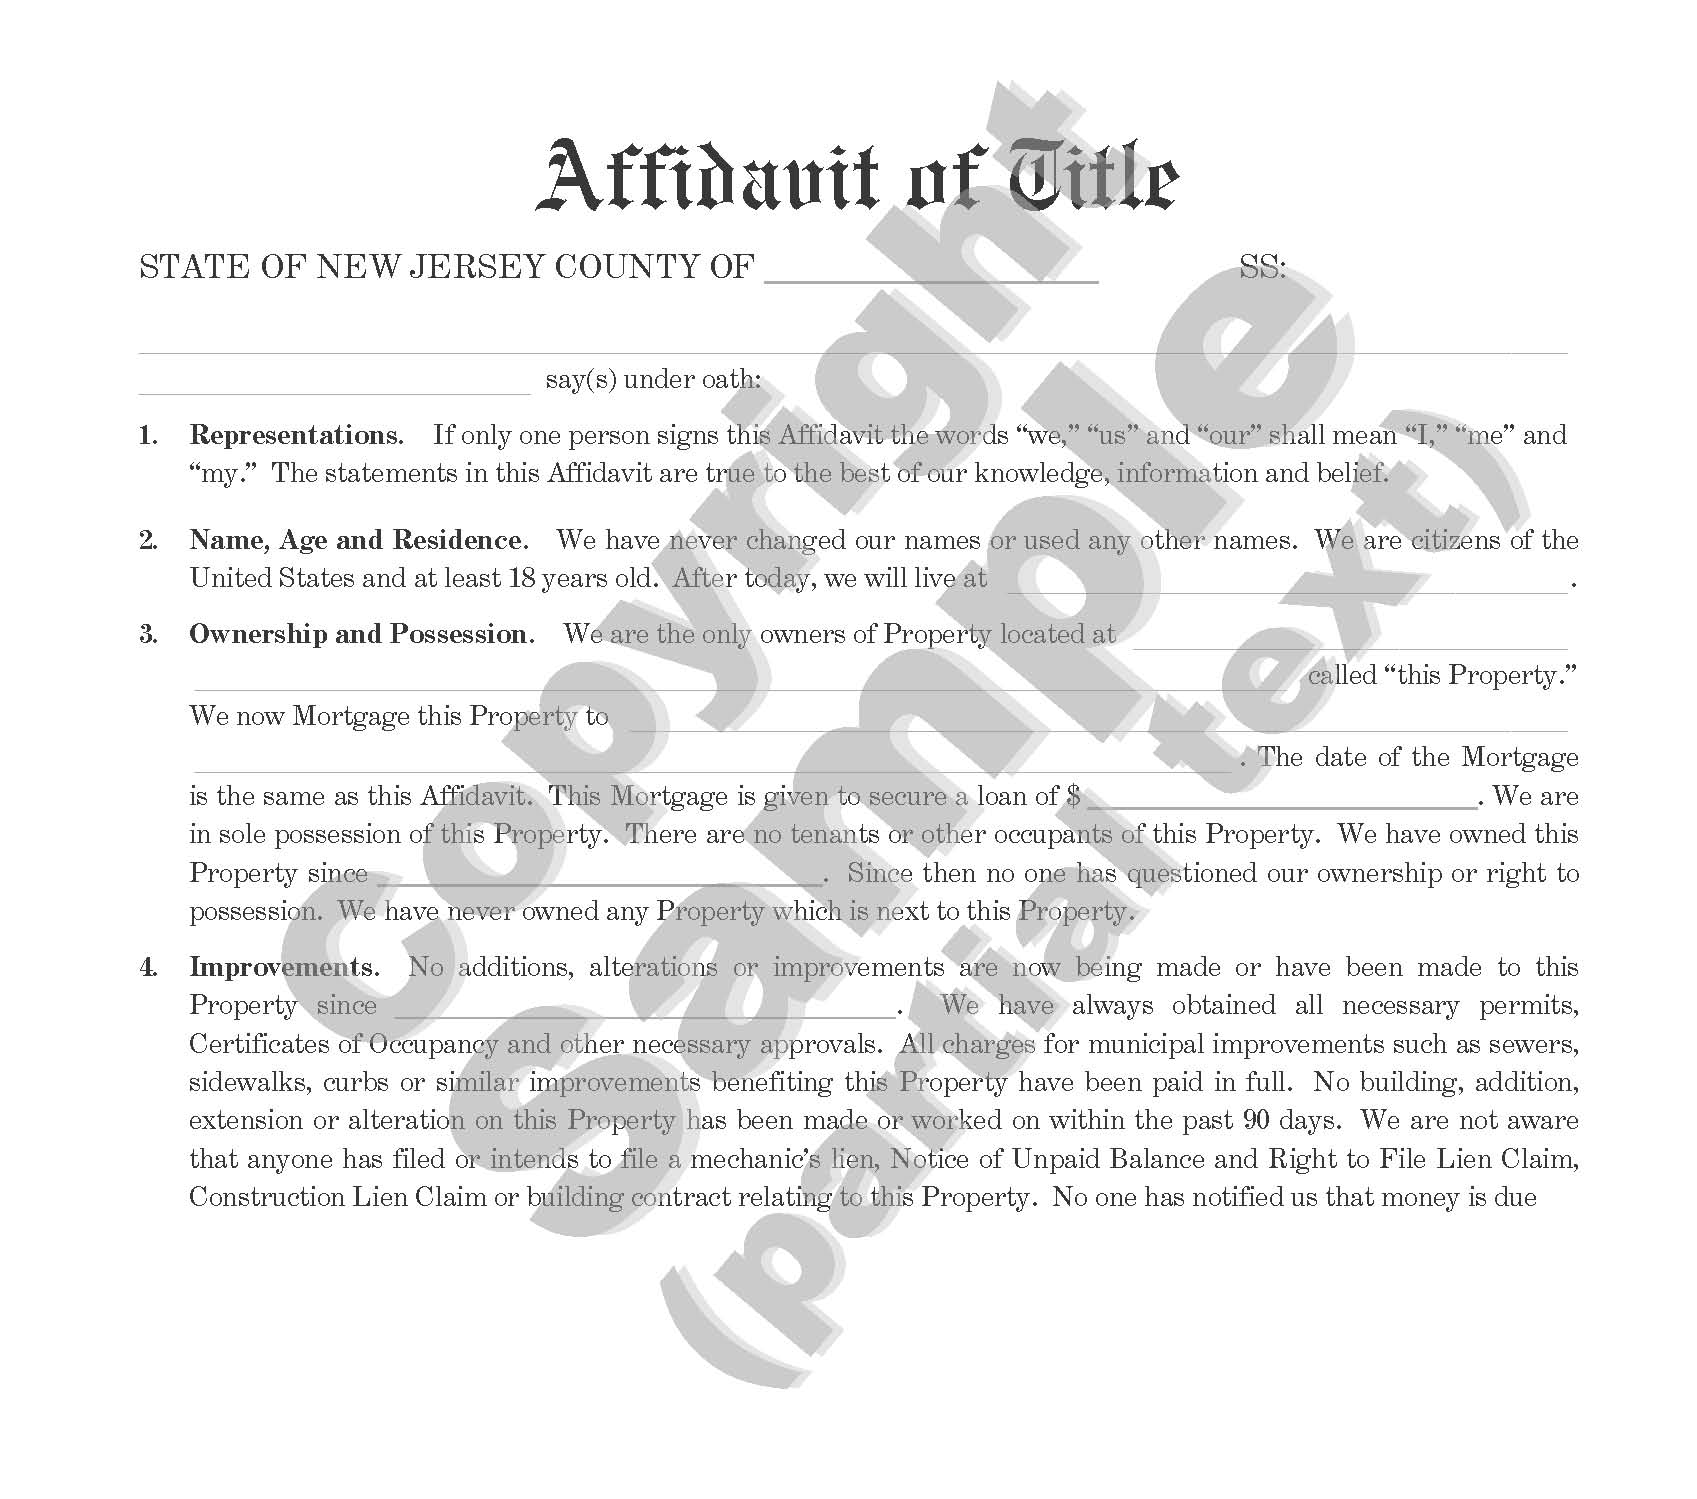 Affidavit of Title - For Mortgage of Property by Individual - Plain Language